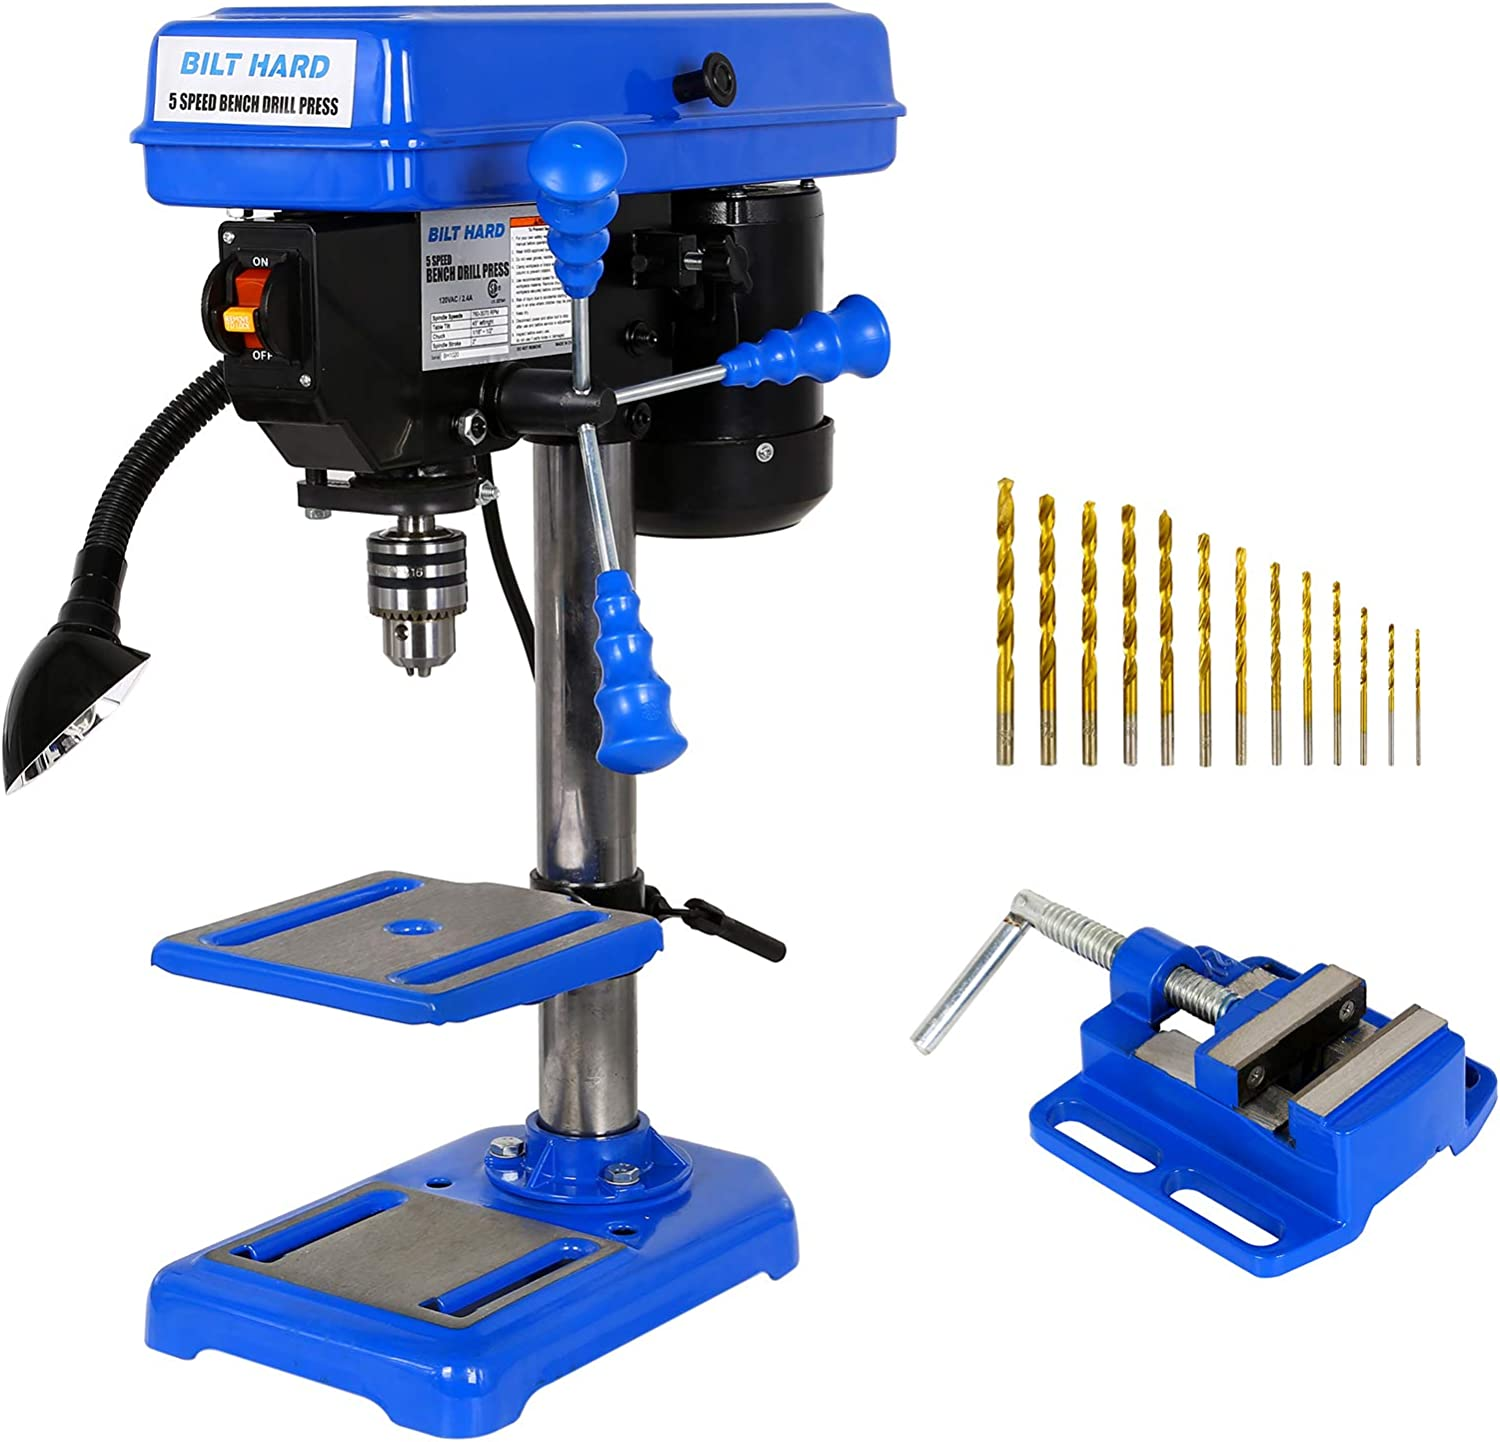 BILT HARD TL-DP85-W 8-Inch 5-Speed Drill Press with Worklight and Drill Vise